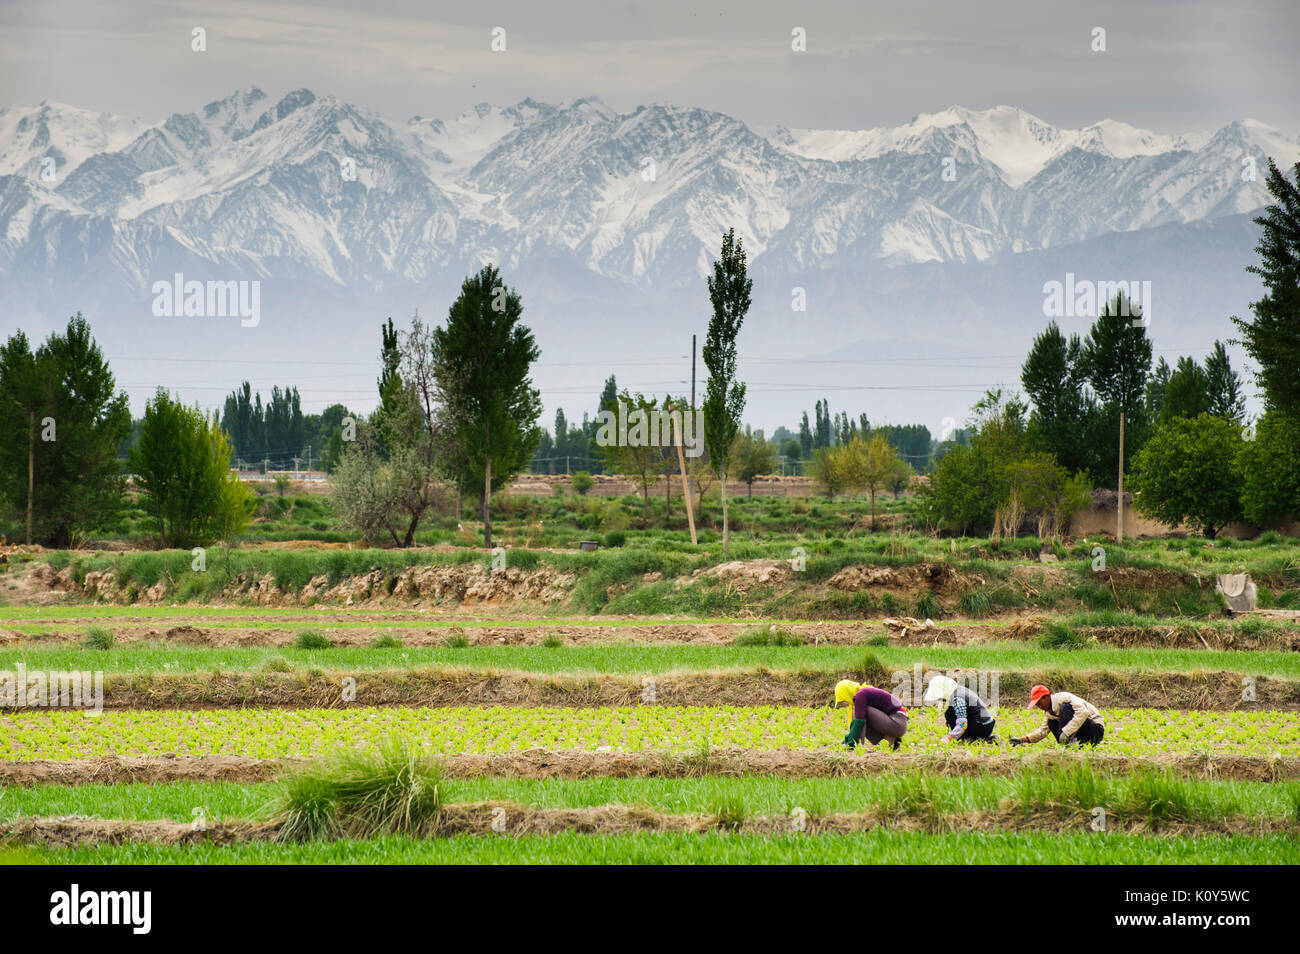 Farmers in Gansu province. China - Stock Image